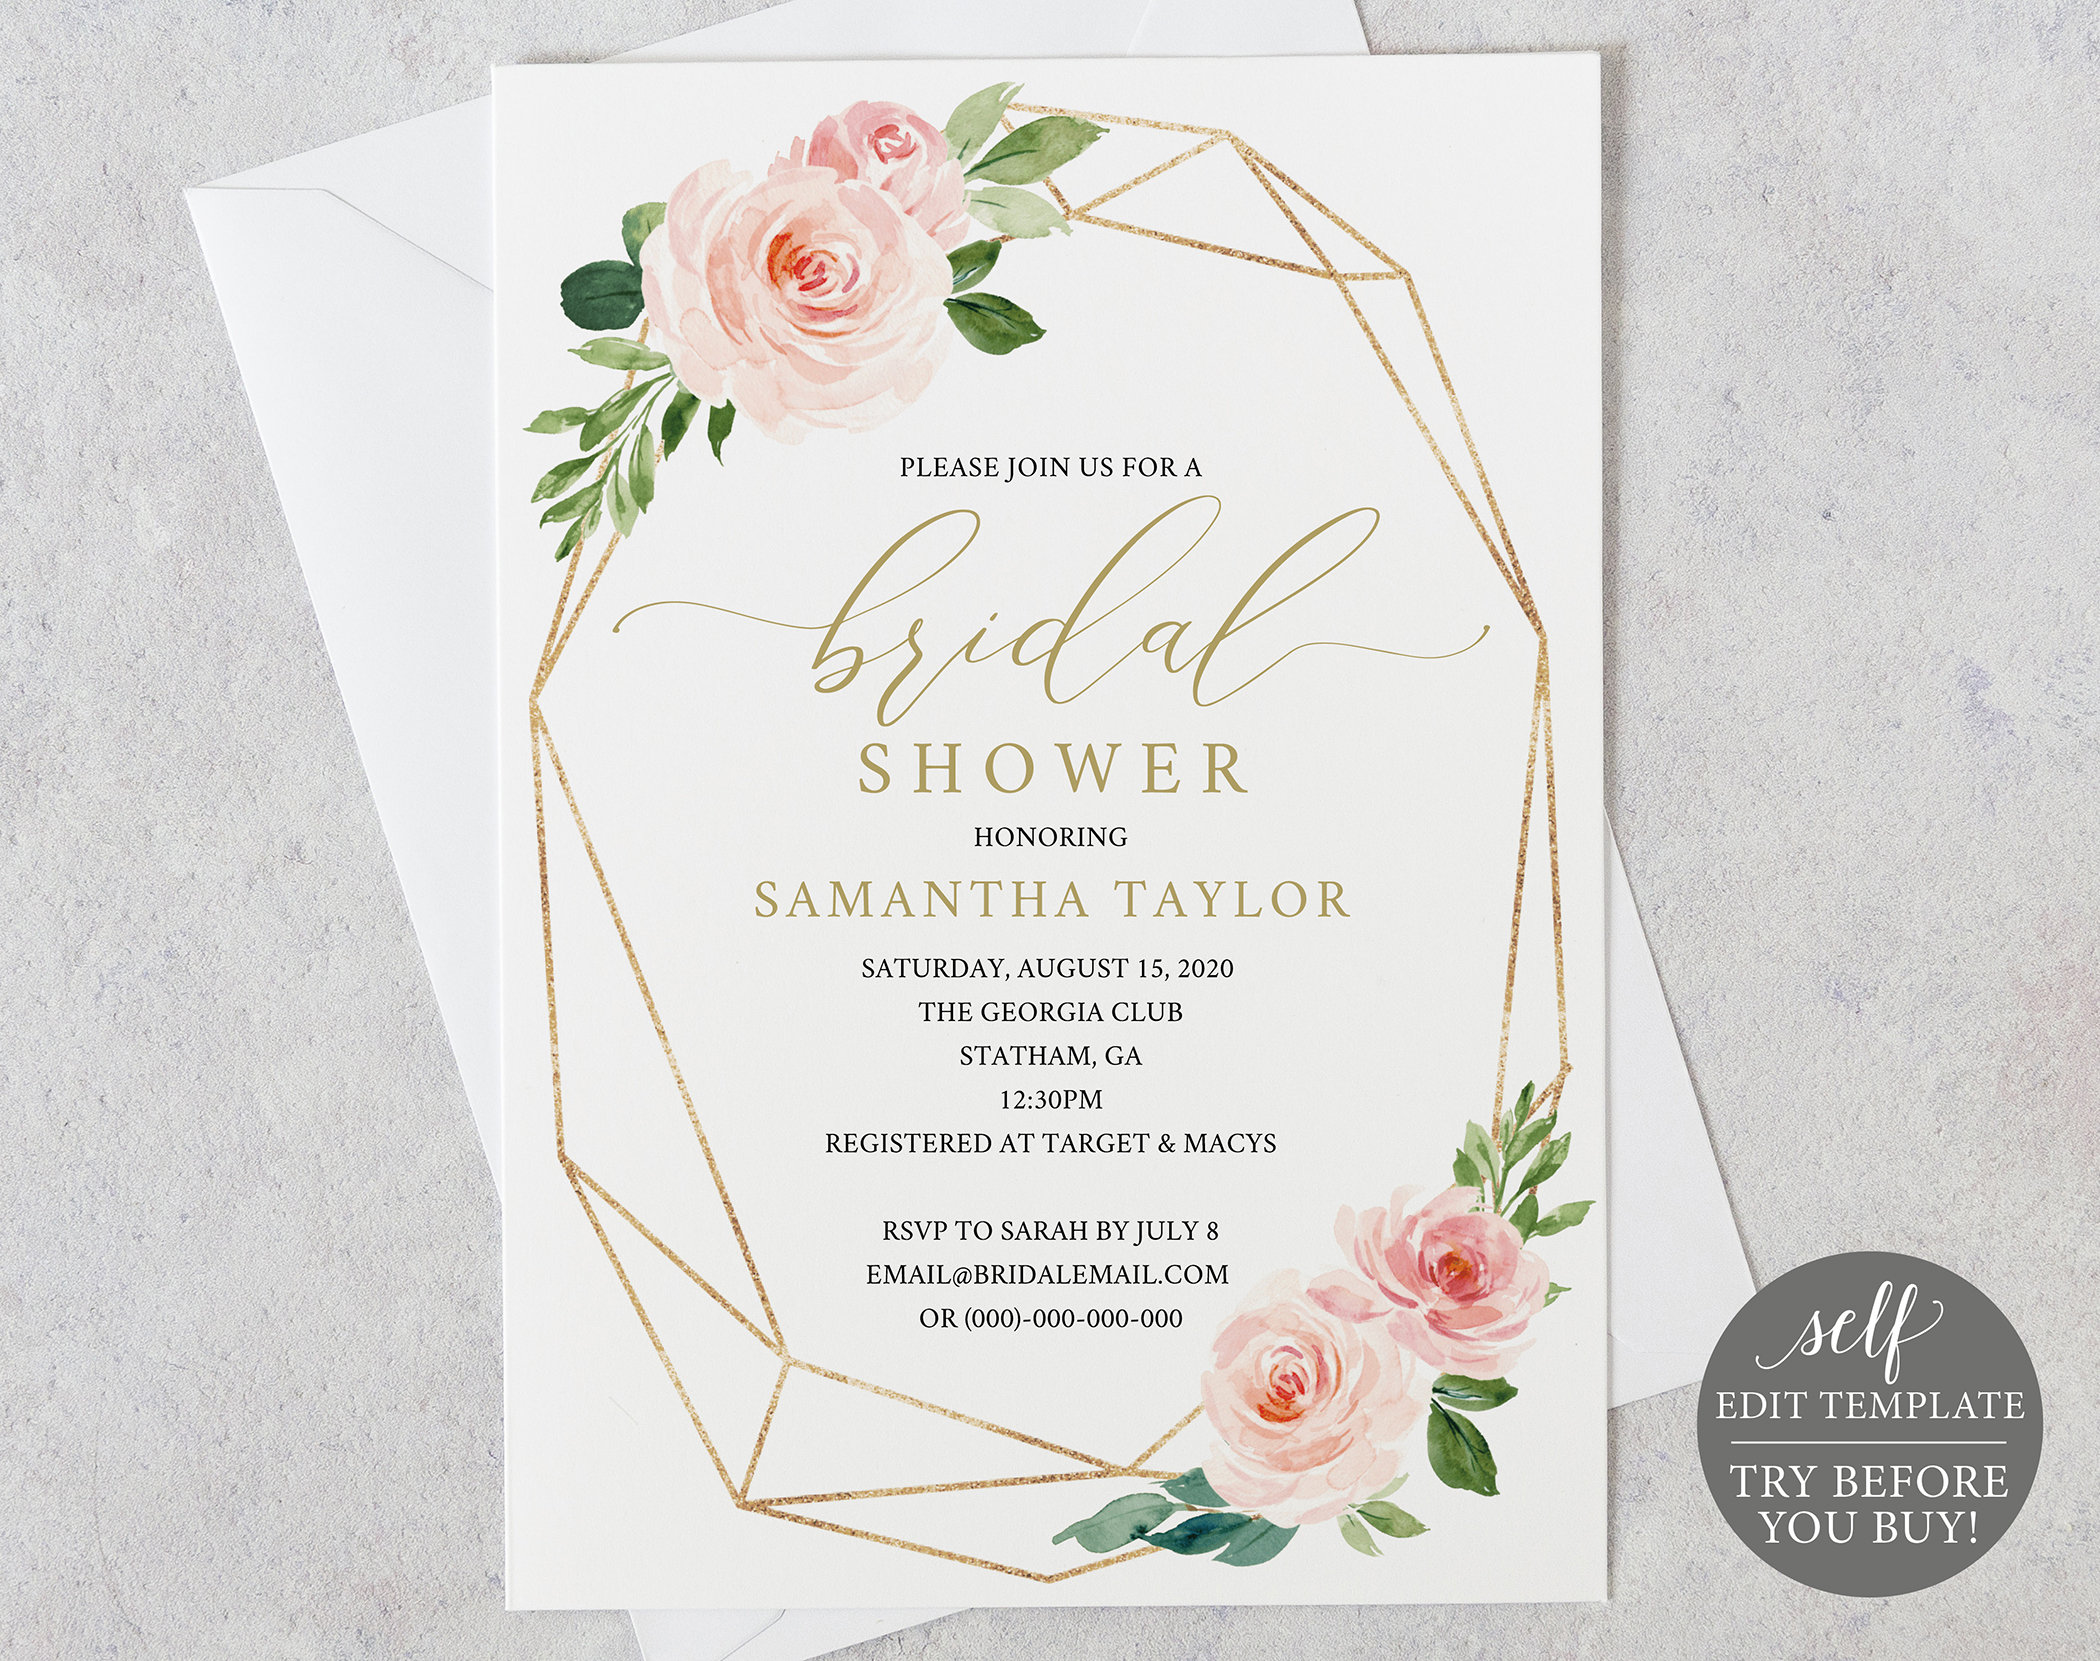 image relating to Bridal Shower Invitations Printable known as Bridal Shower Invitation, Printable Bridal Shower Invite 100% Editable Template, Immediate Down load, Geometric, Purple, Blush, Gold, Floral